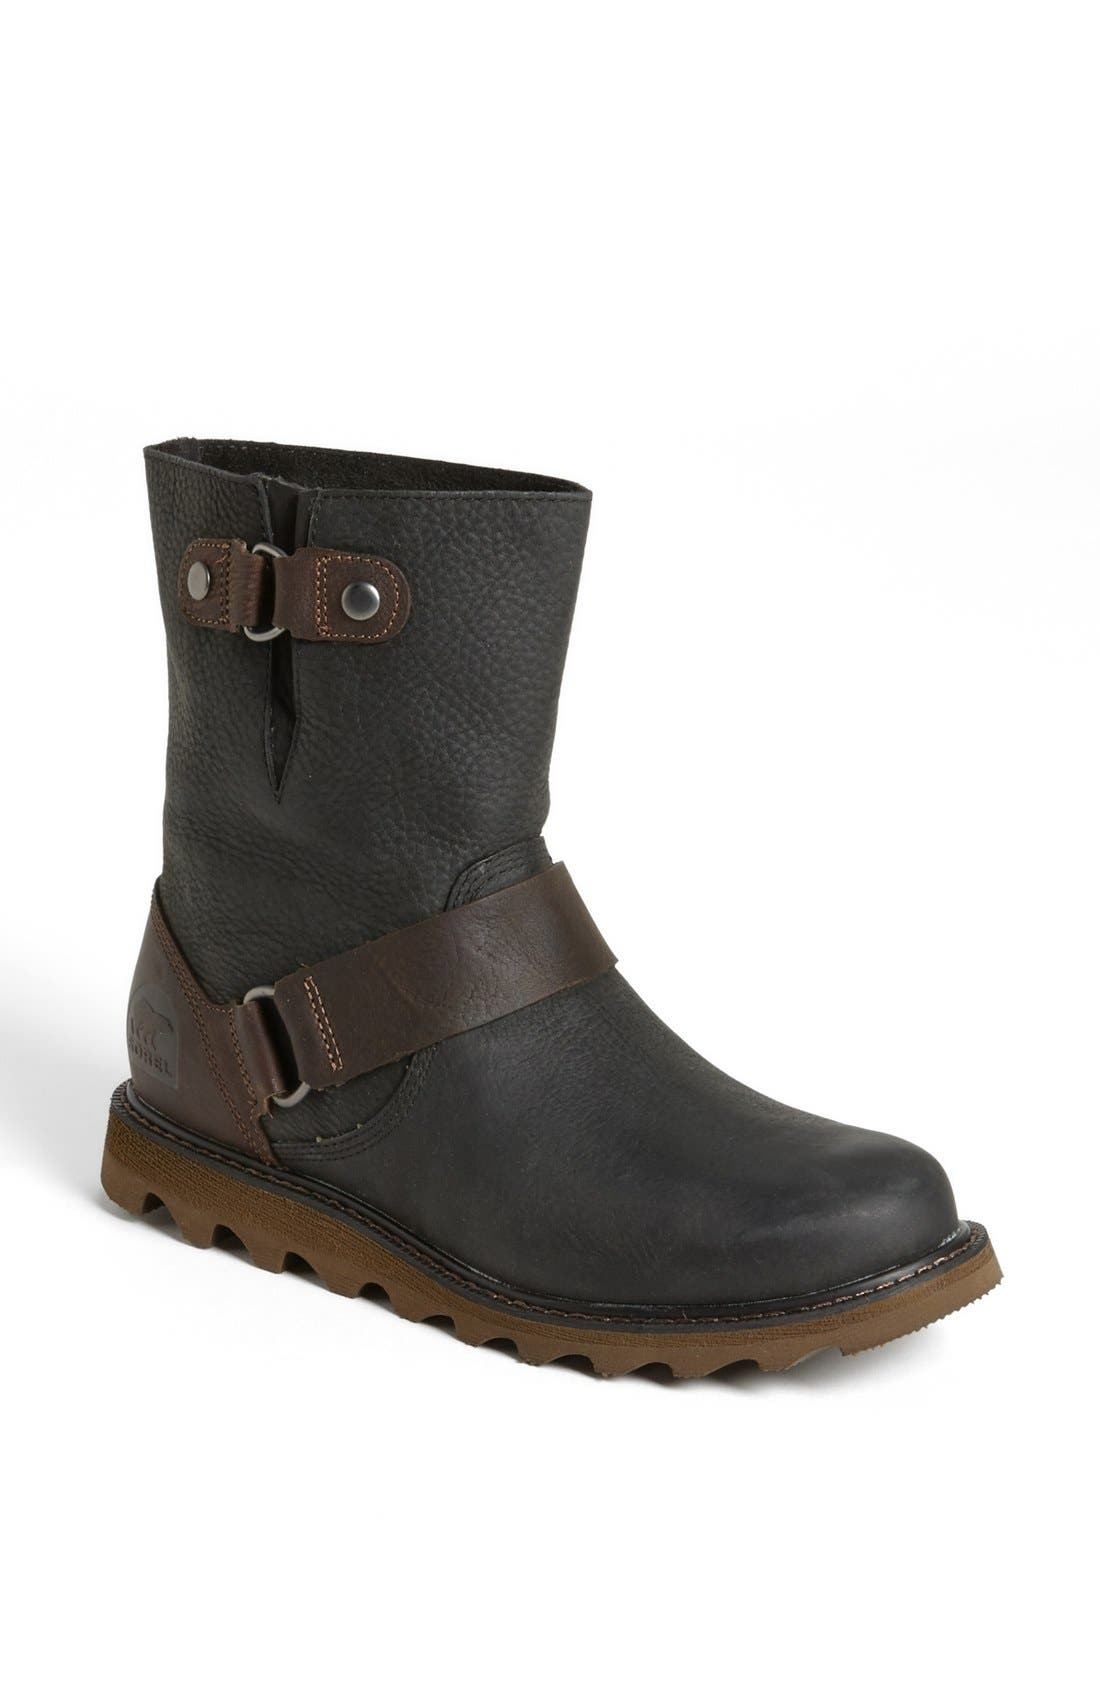 Alternate Image 1 Selected - SOREL 'Scotia' Waterproof Boot